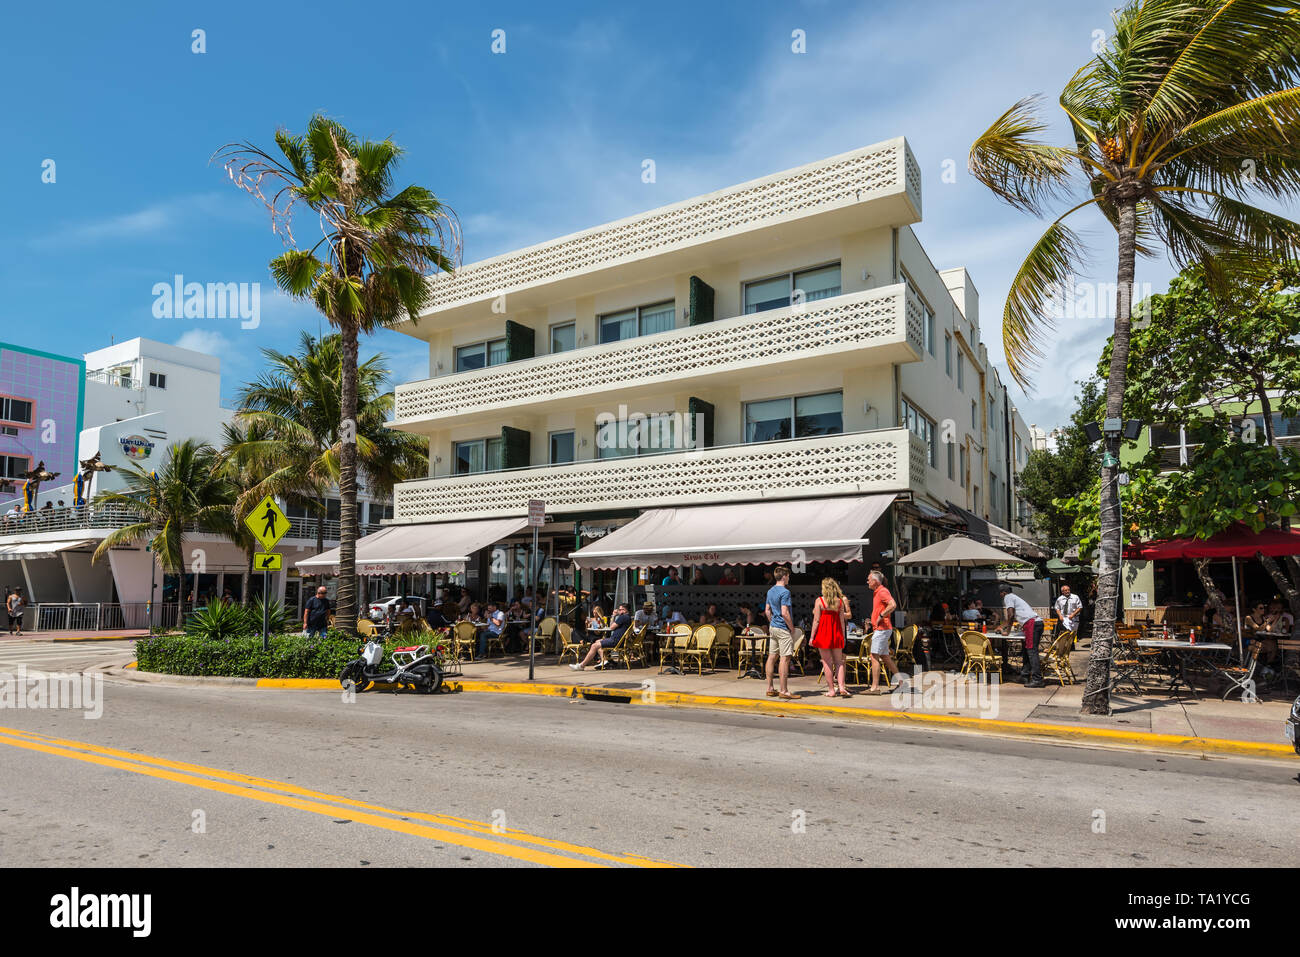 Miami Fl Usa April 19 2019 The News Cafe At The